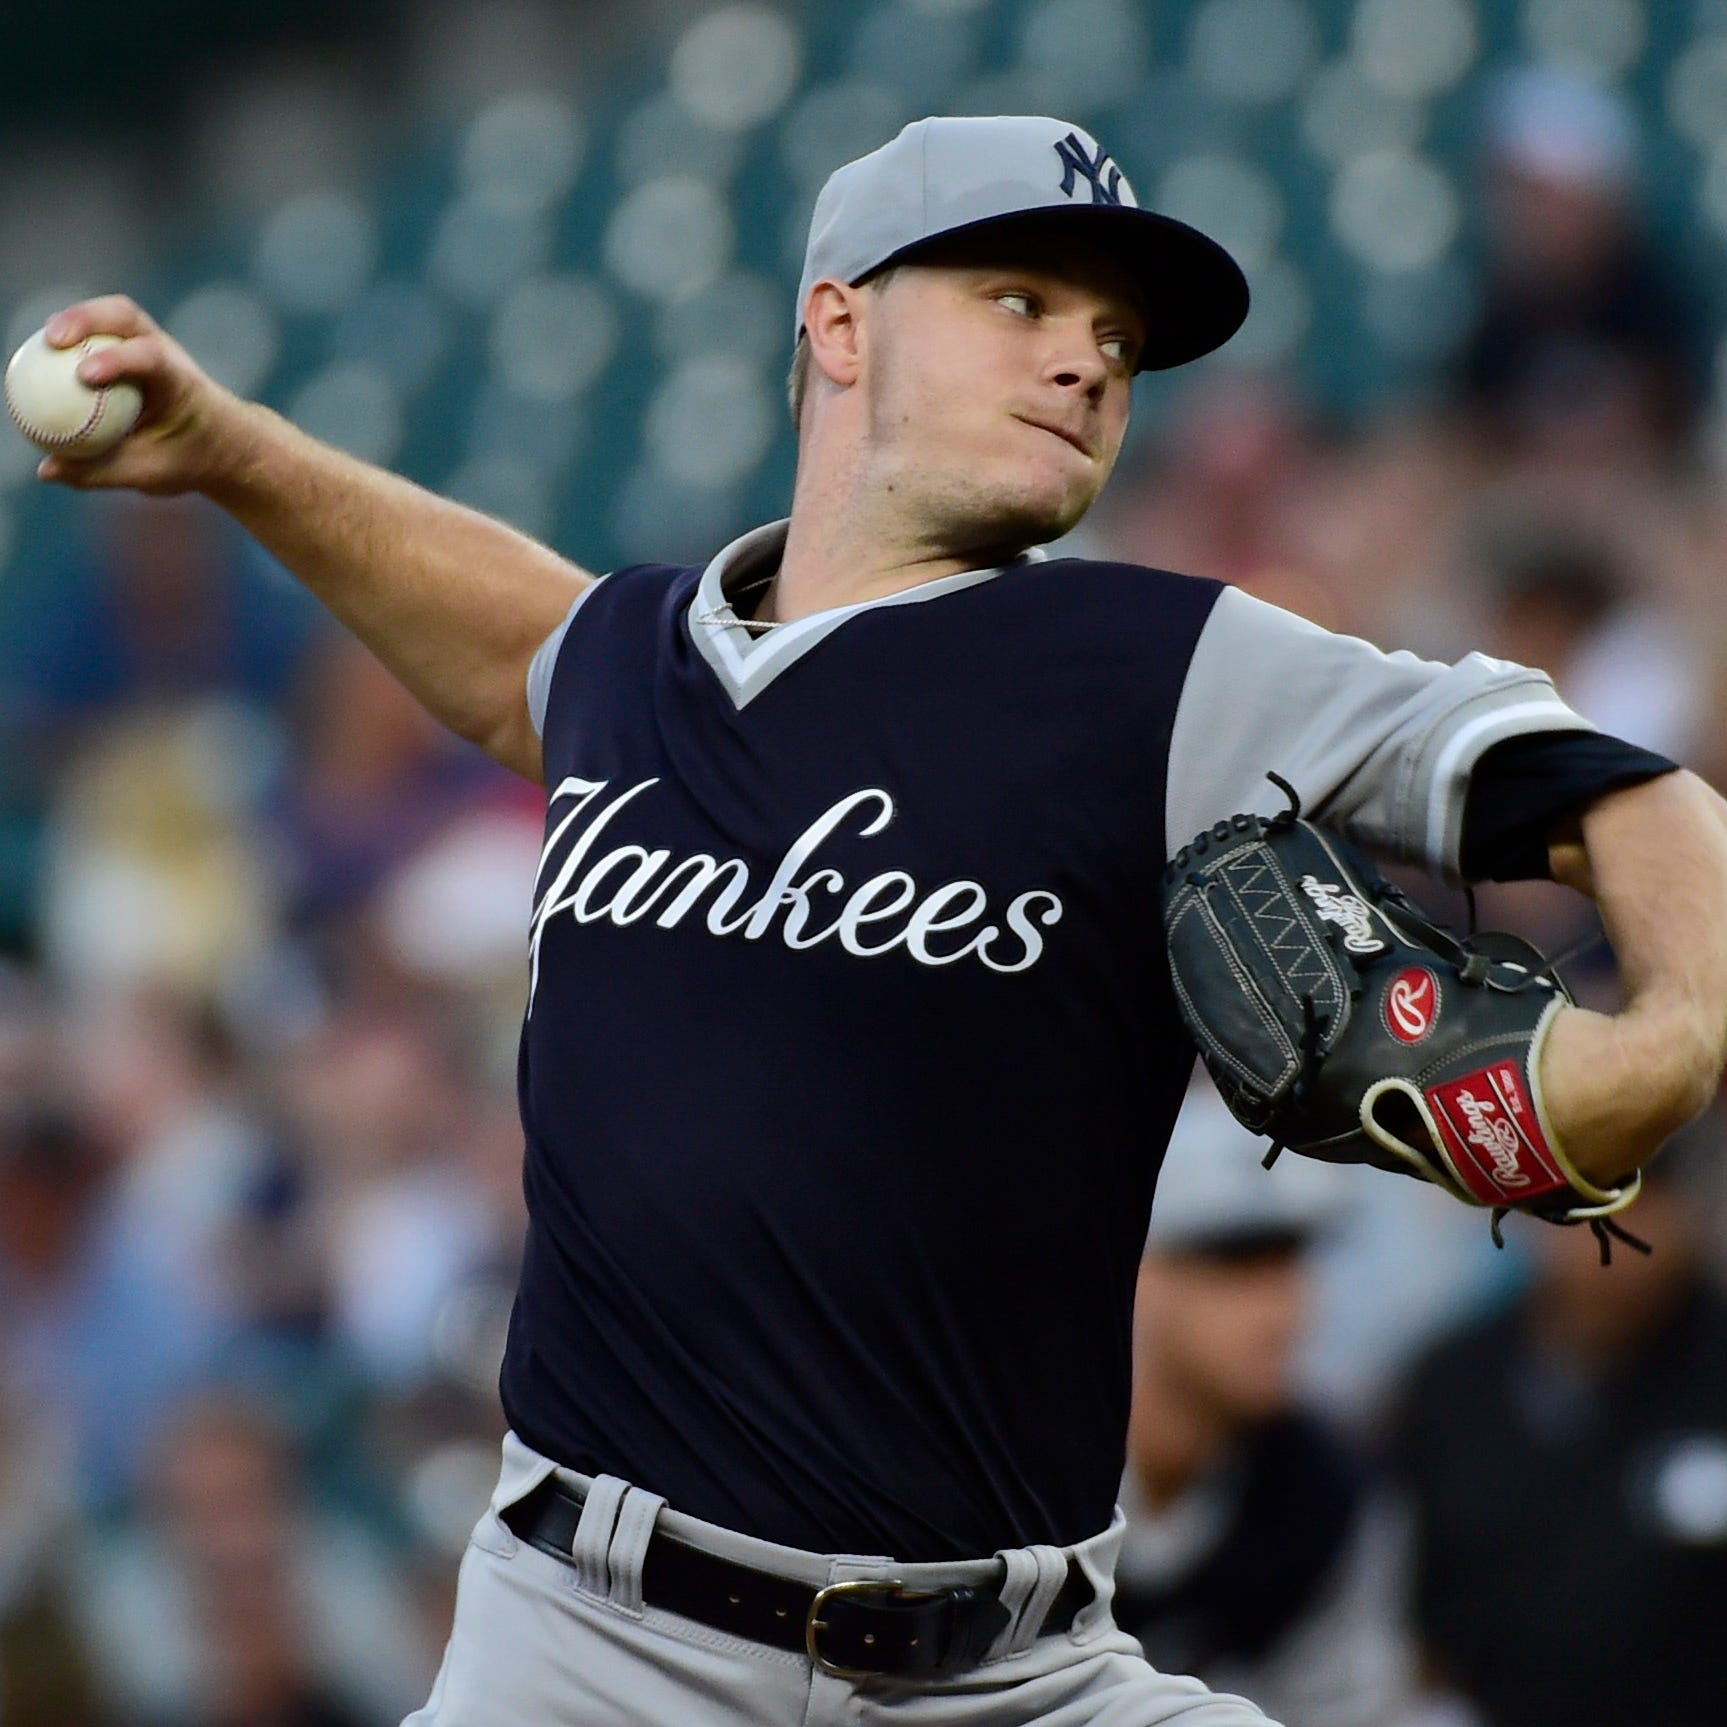 Yankees close to trading Sonny Gray to Reds for prospects, per reports